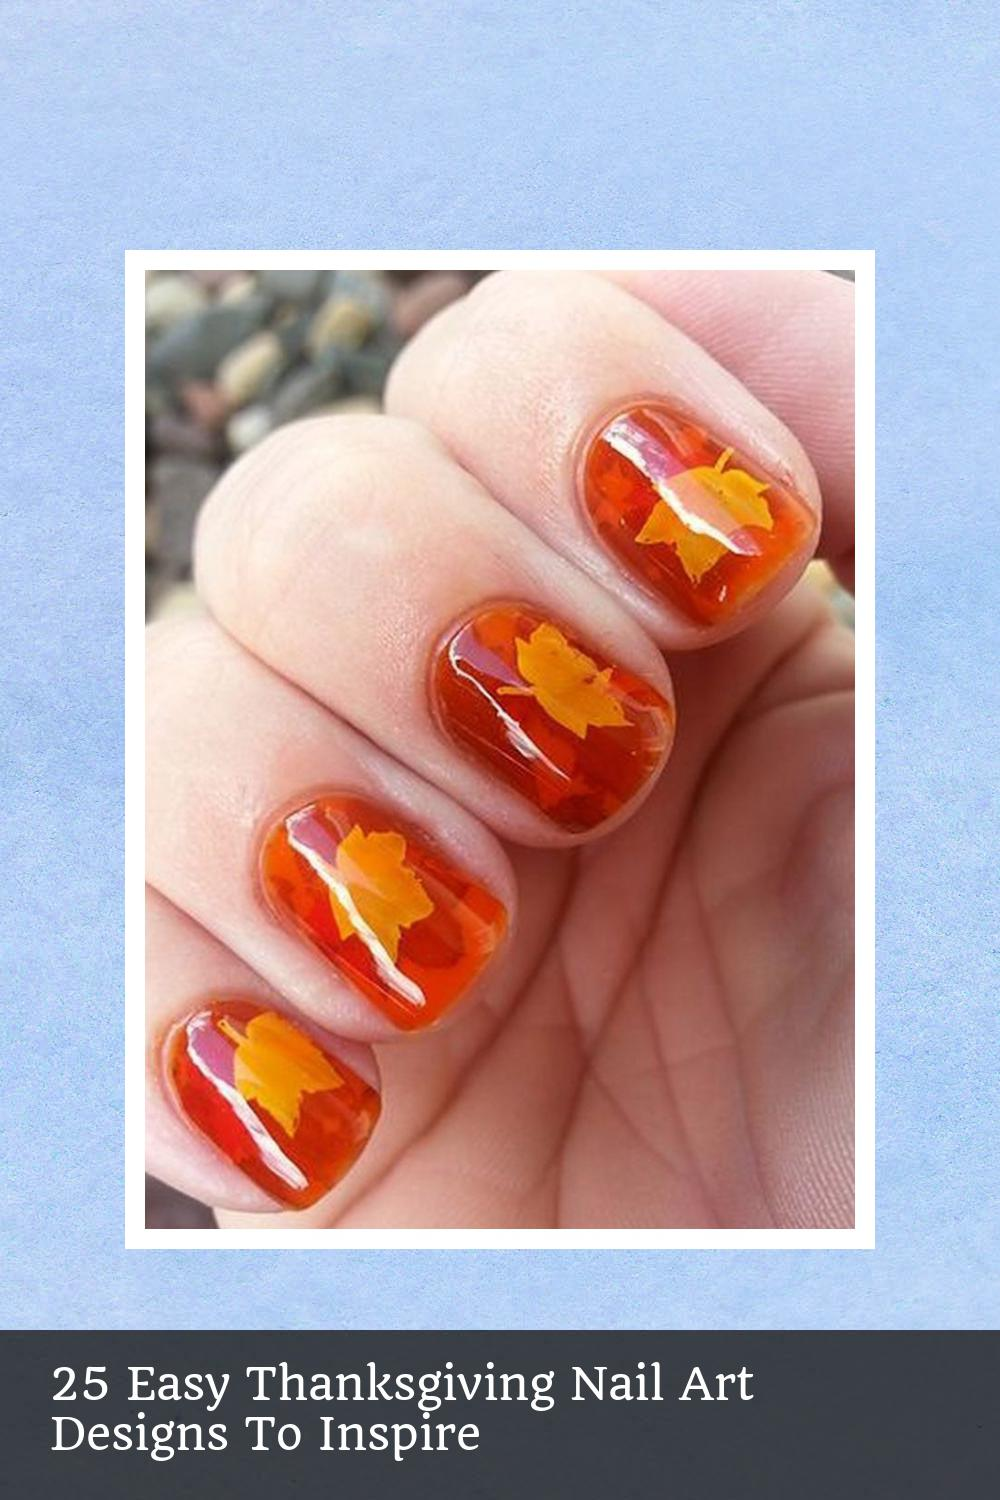 25 Easy Thanksgiving Nail Art Designs To Inspire 18